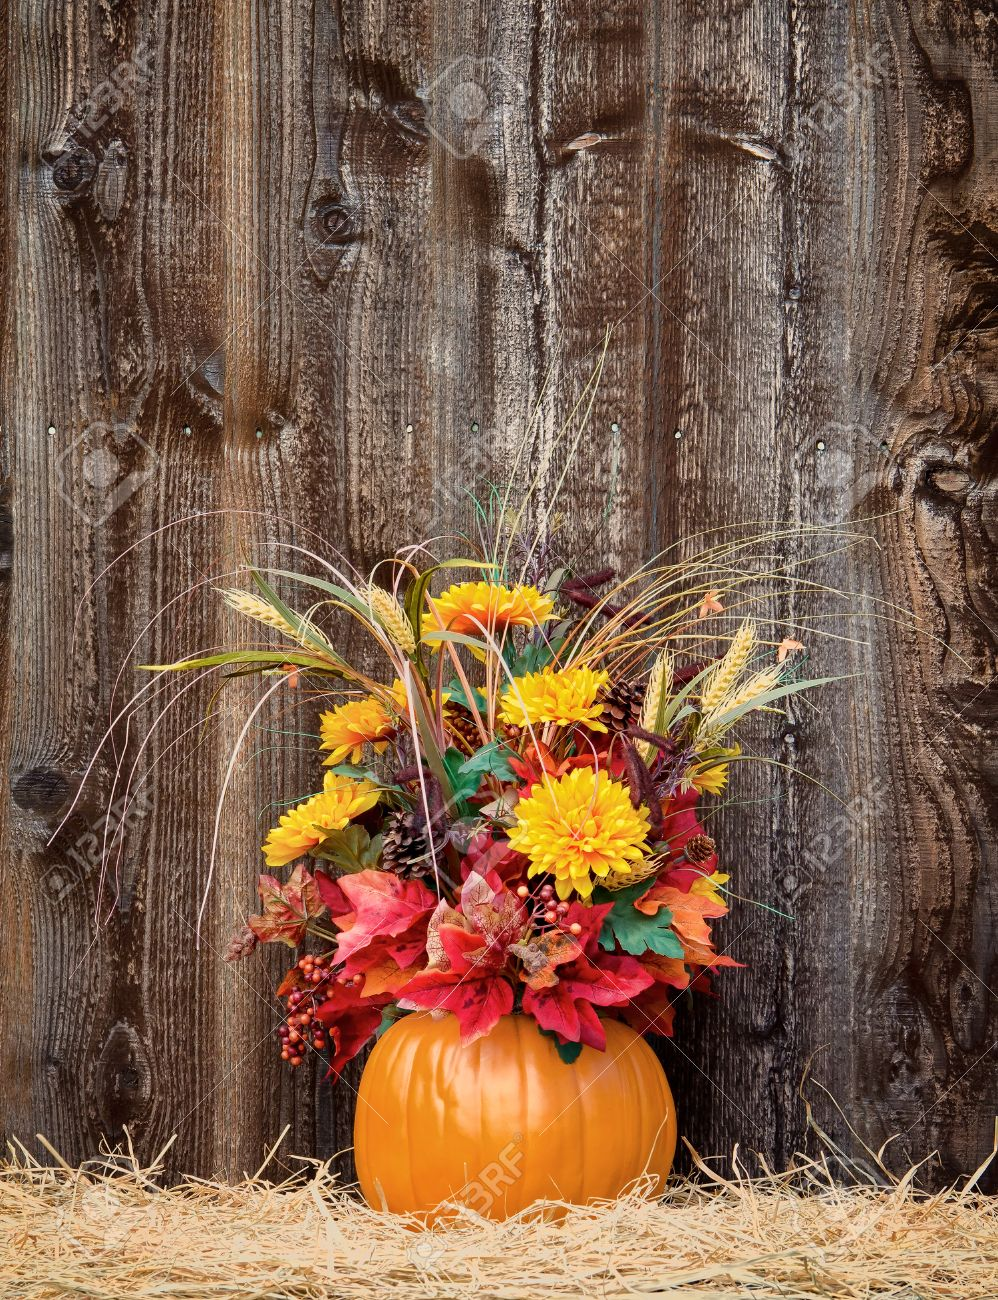 Pumpkin Flower Arrangement On Hay Against Rustic Wooden Background Stock Photo